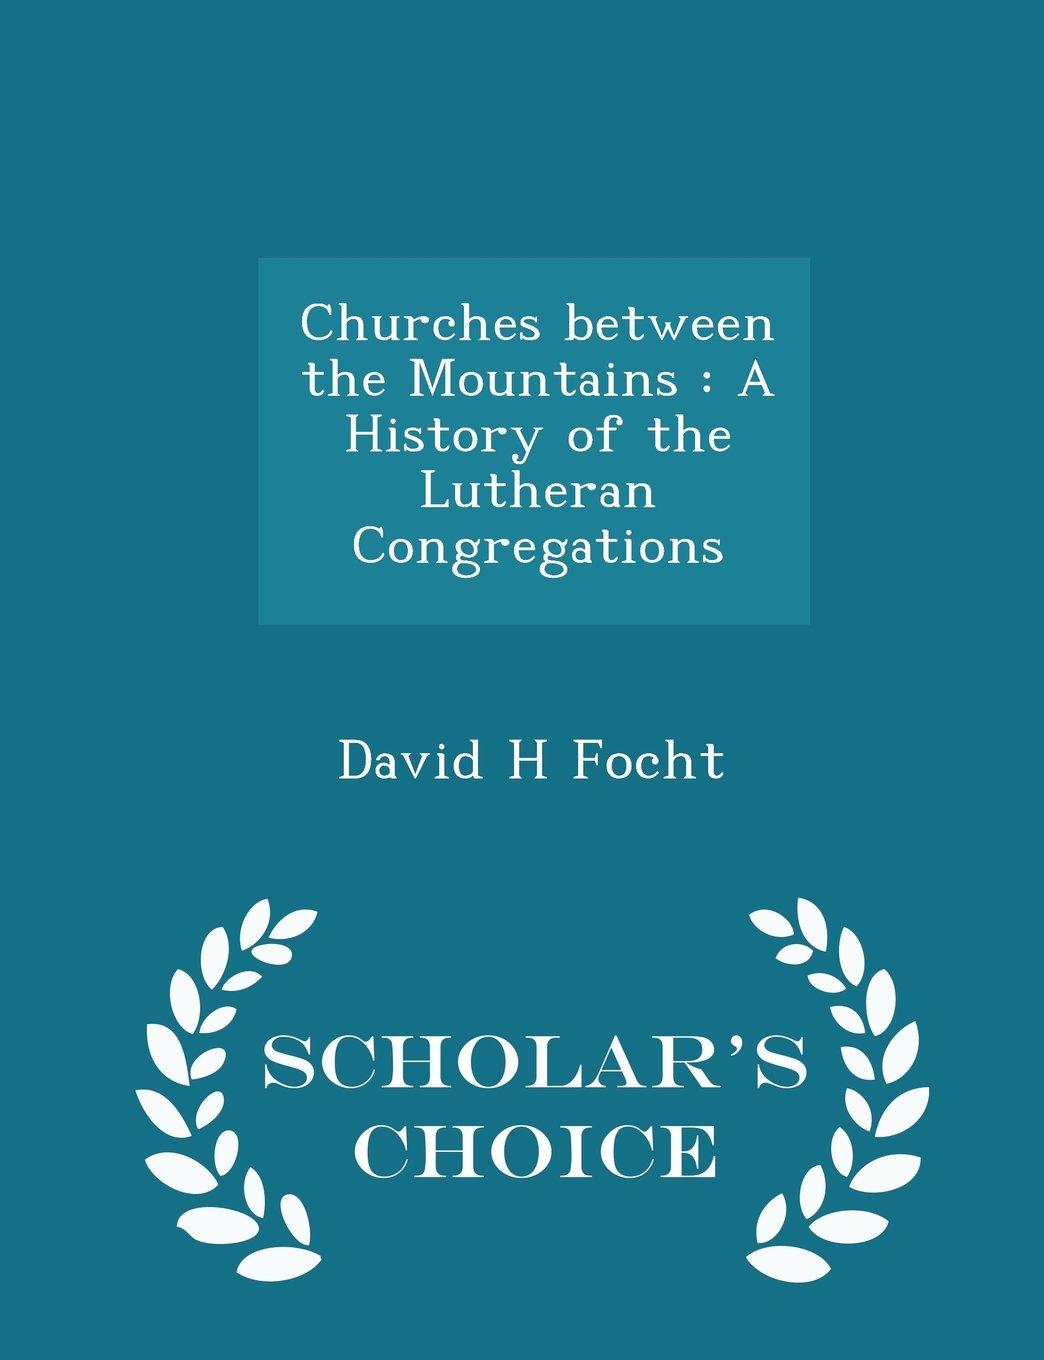 Read Online Churches between the Mountains: A History of the Lutheran Congregations - Scholar's Choice Edition pdf